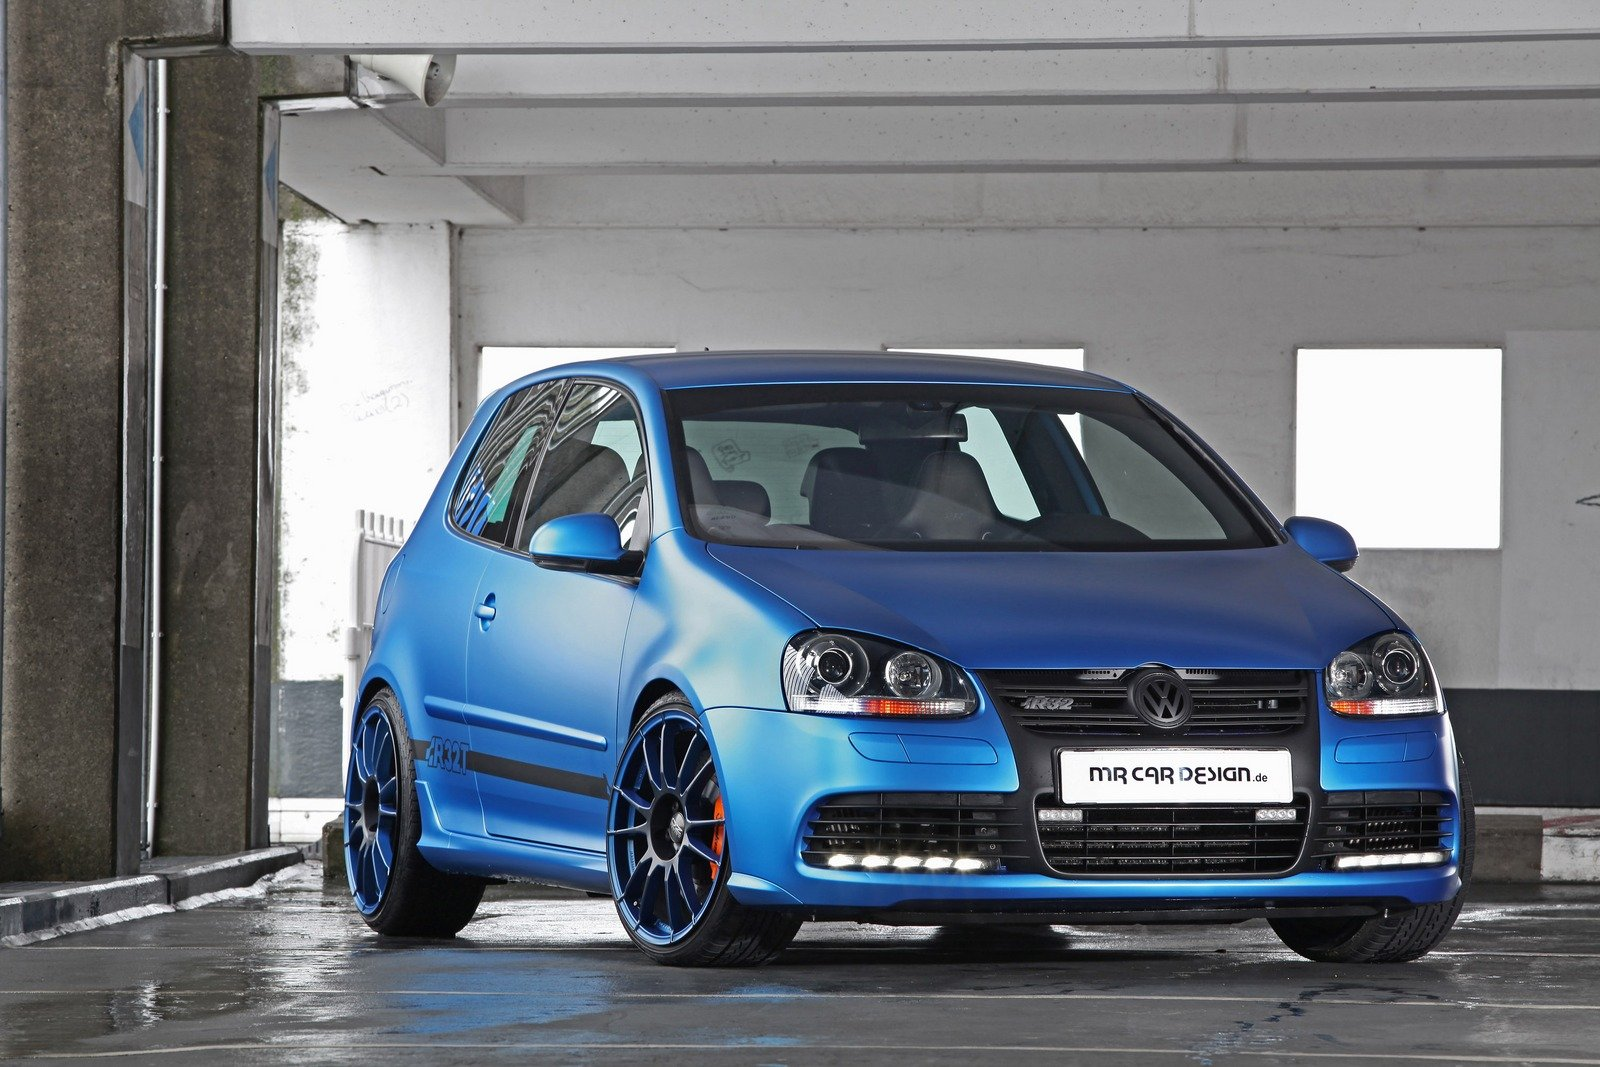 2005 2008 volkswagen golf v r32 by mr car design review top speed. Black Bedroom Furniture Sets. Home Design Ideas